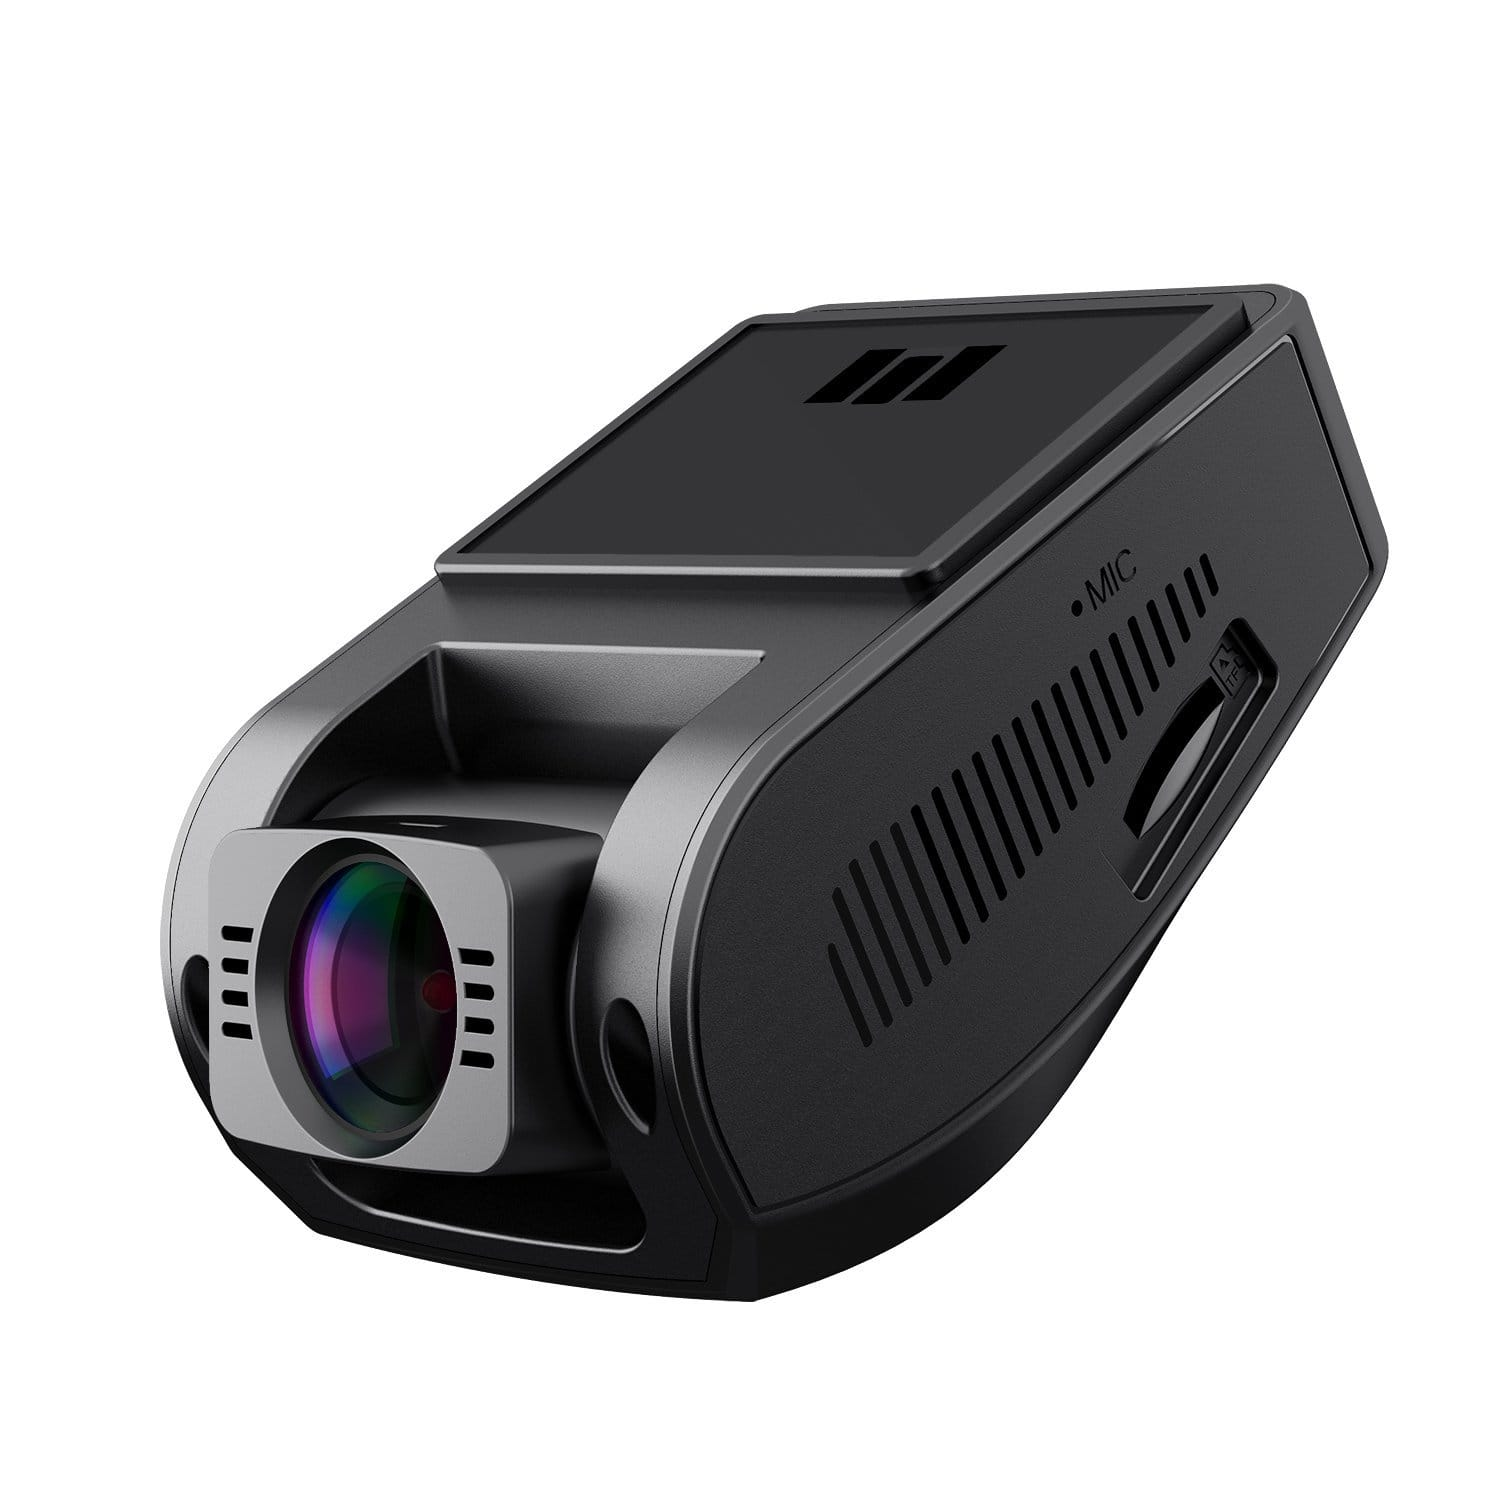 Aukey 1080p Dash Cam DR-02 $52.49 with free shipping via Aukey Direct on Amazon Lightning Deal